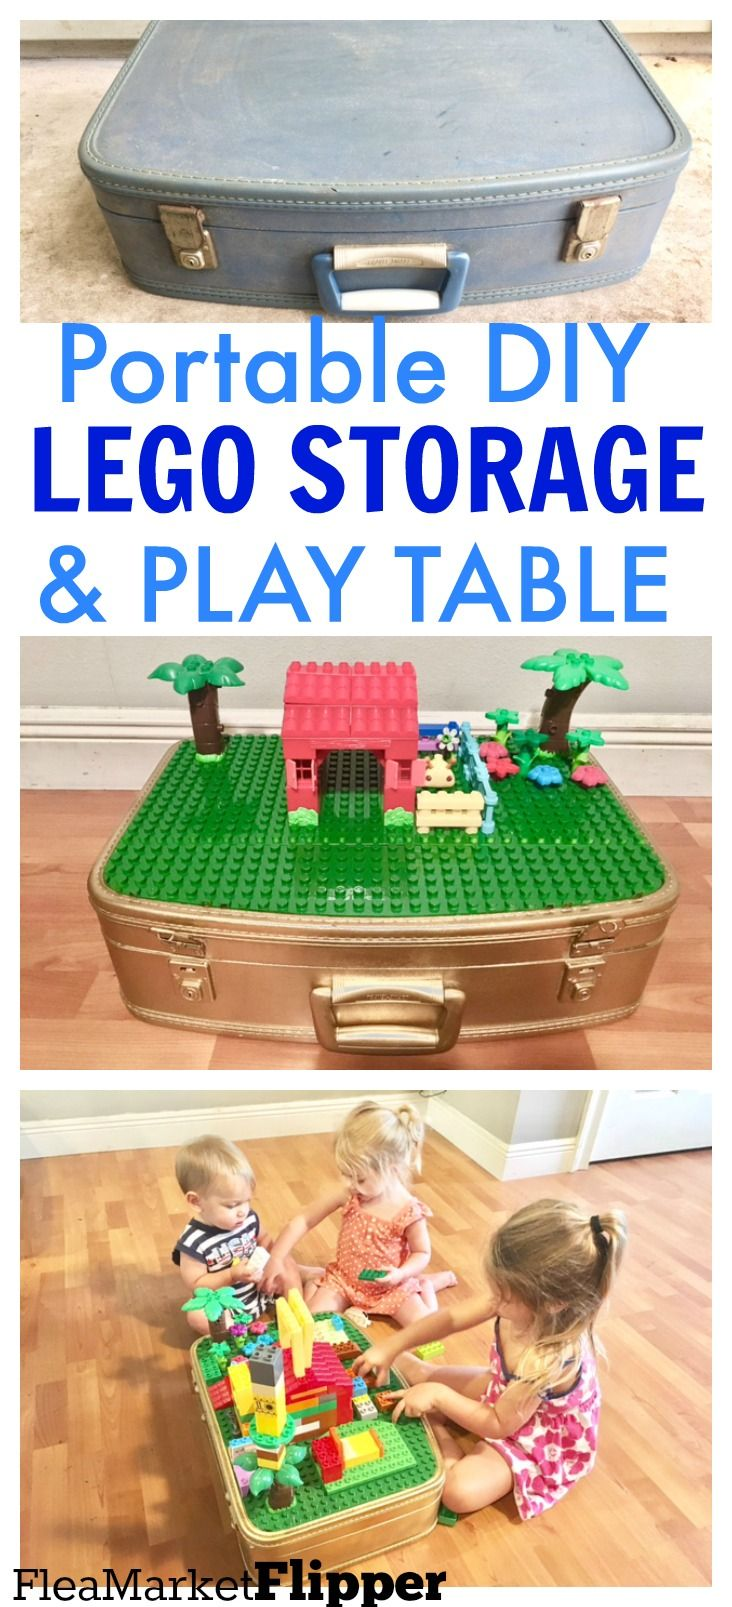 Turn an old suitcase from the FLEA MARKET or THRIFT STORE, into a FUN, CREATIVE play area for kids and their LEGOS!  Taking this with us in our RV! #thriftstoreupcycle